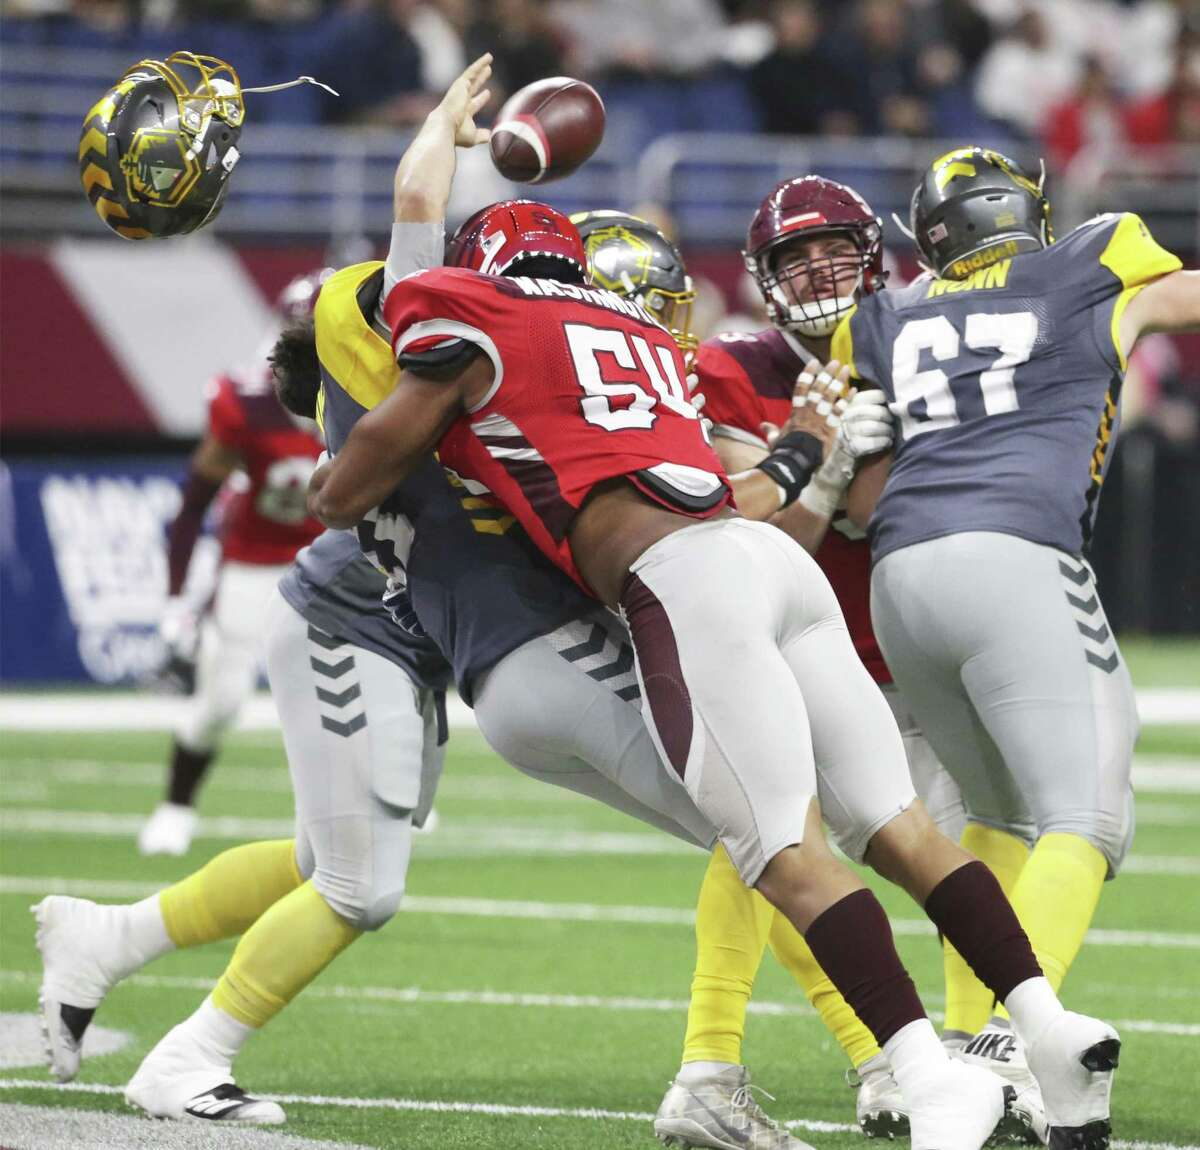 San Antonio linebacker Shaan Washinton knocks the helmet off of the Fleet quarterback Mike Bercovici as the Commanders host San Diego at the Alamodome in the opening game for the Alliance of American Football league on February 9, 2019.